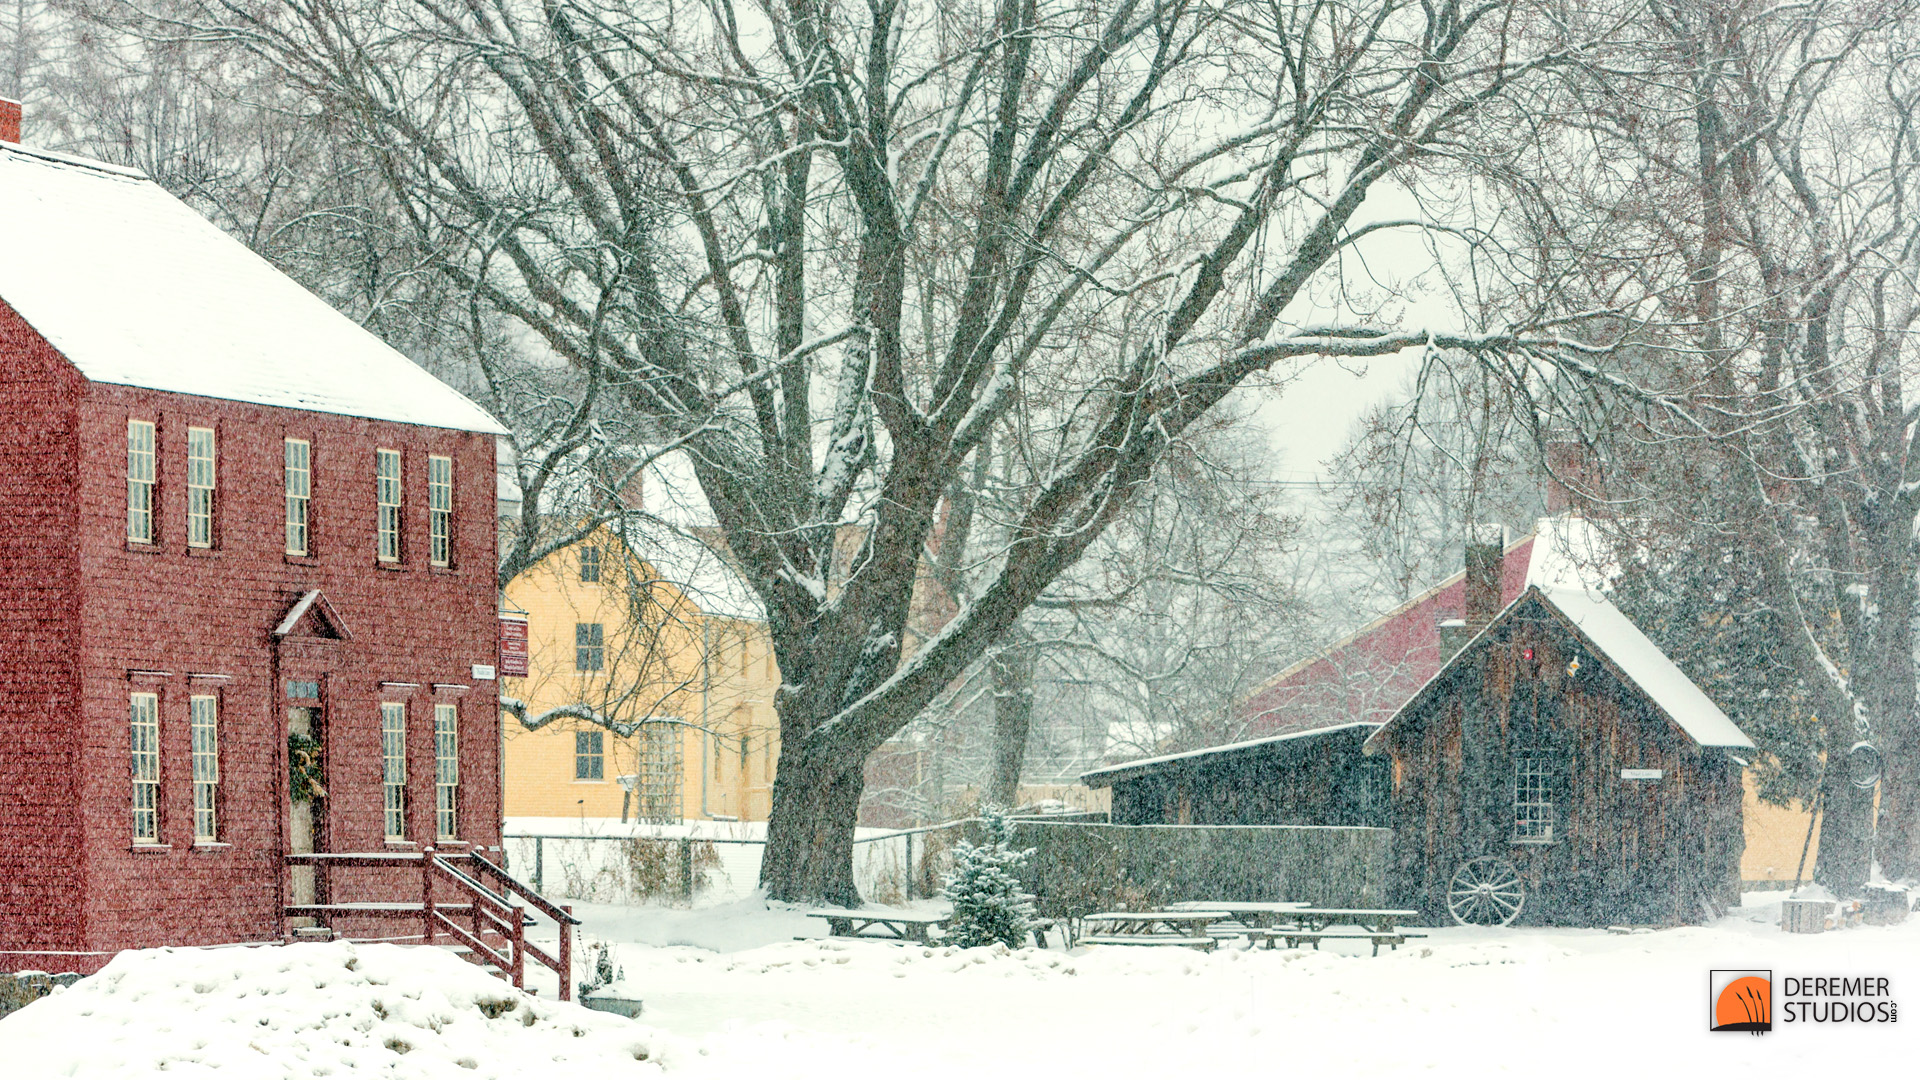 Free Christmas Falling Snow Wallpaper Up North Fine Art Shoots From North Of Fl A Snowy